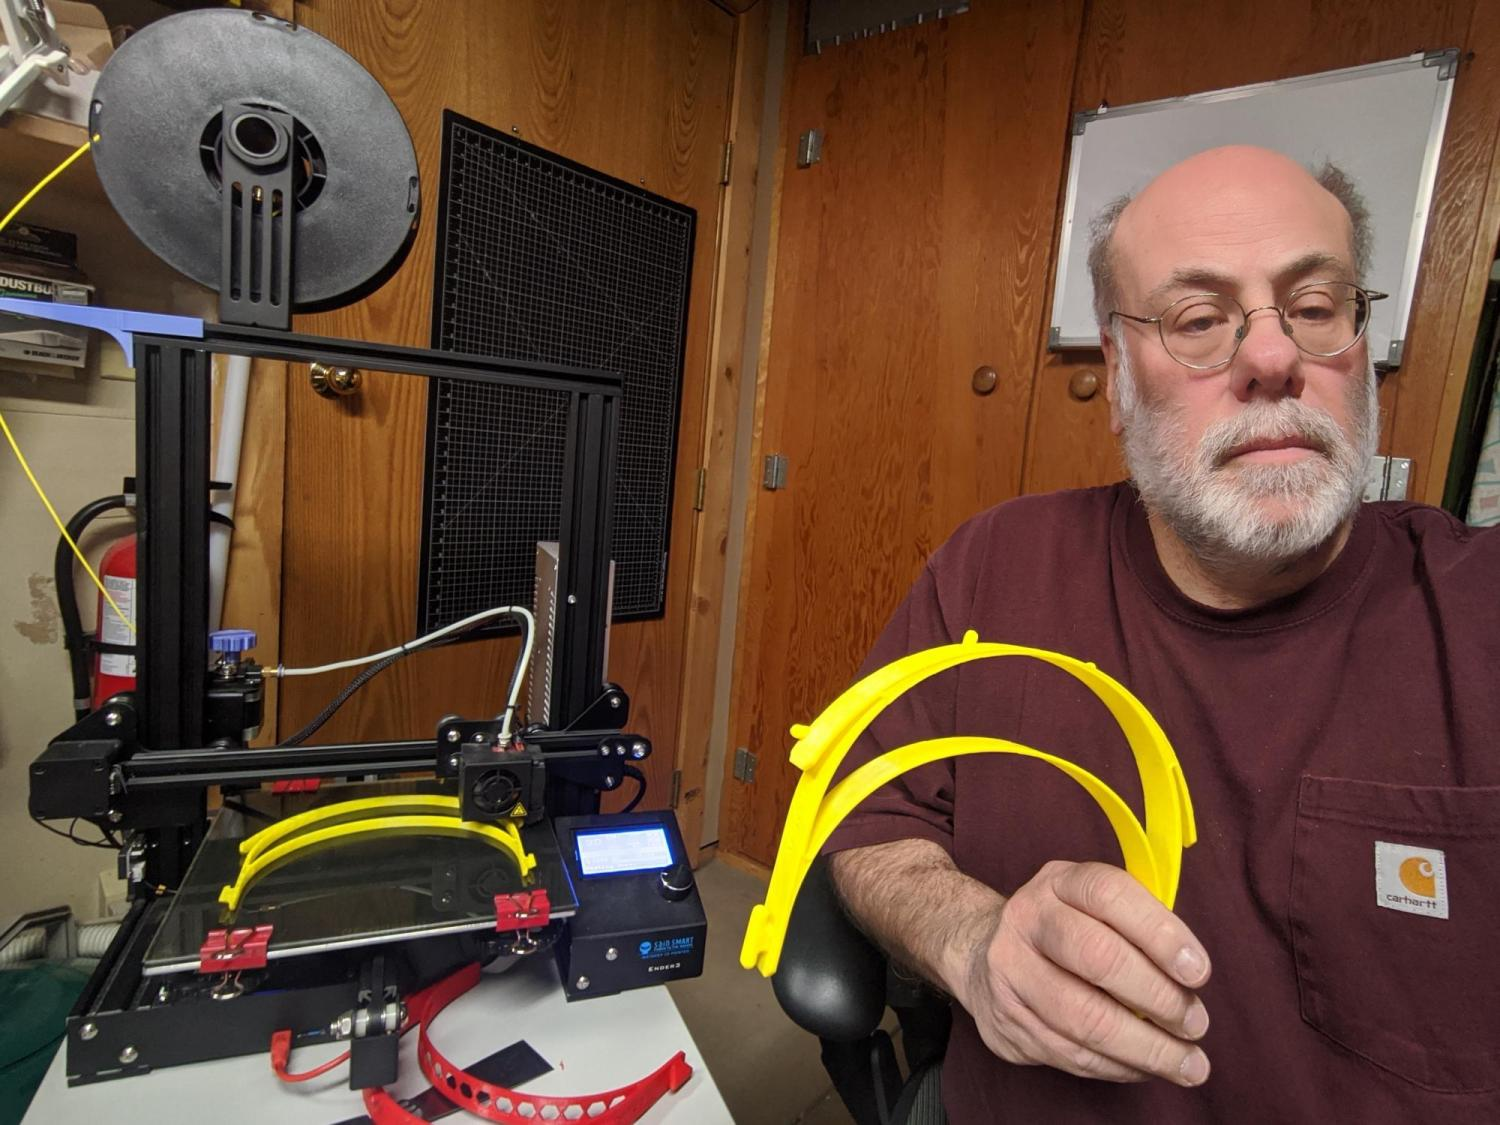 Wayne Seltzer holds shield parts made on his 3D printer next to the printer.